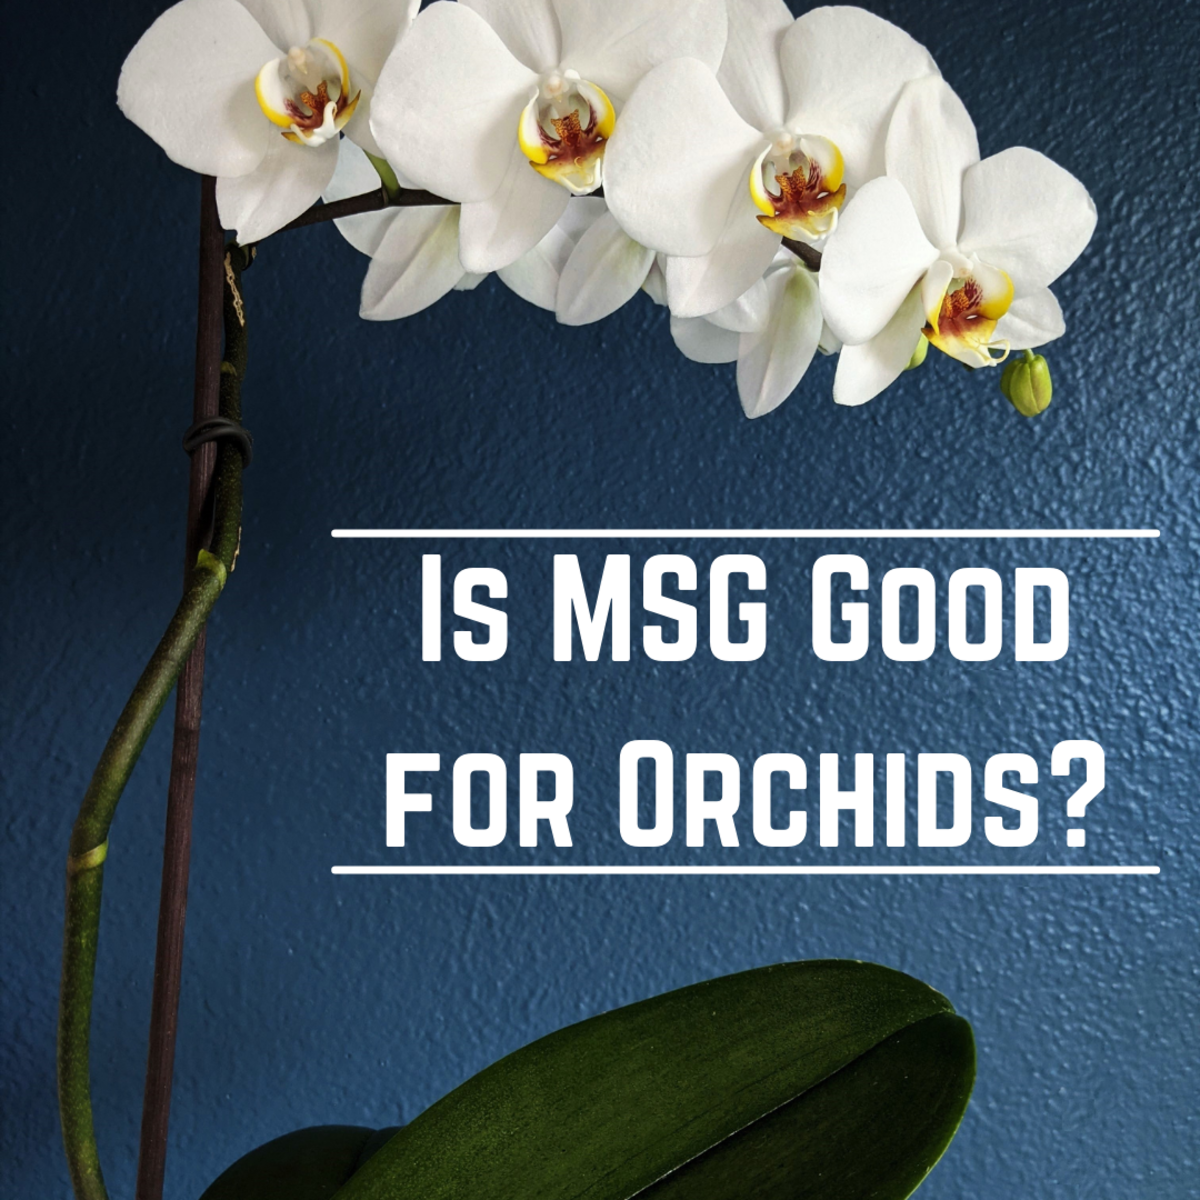 We know that MSG is good as a fertilizer in a lot of gardening and small-scale farming. Is it as successful on orchids?